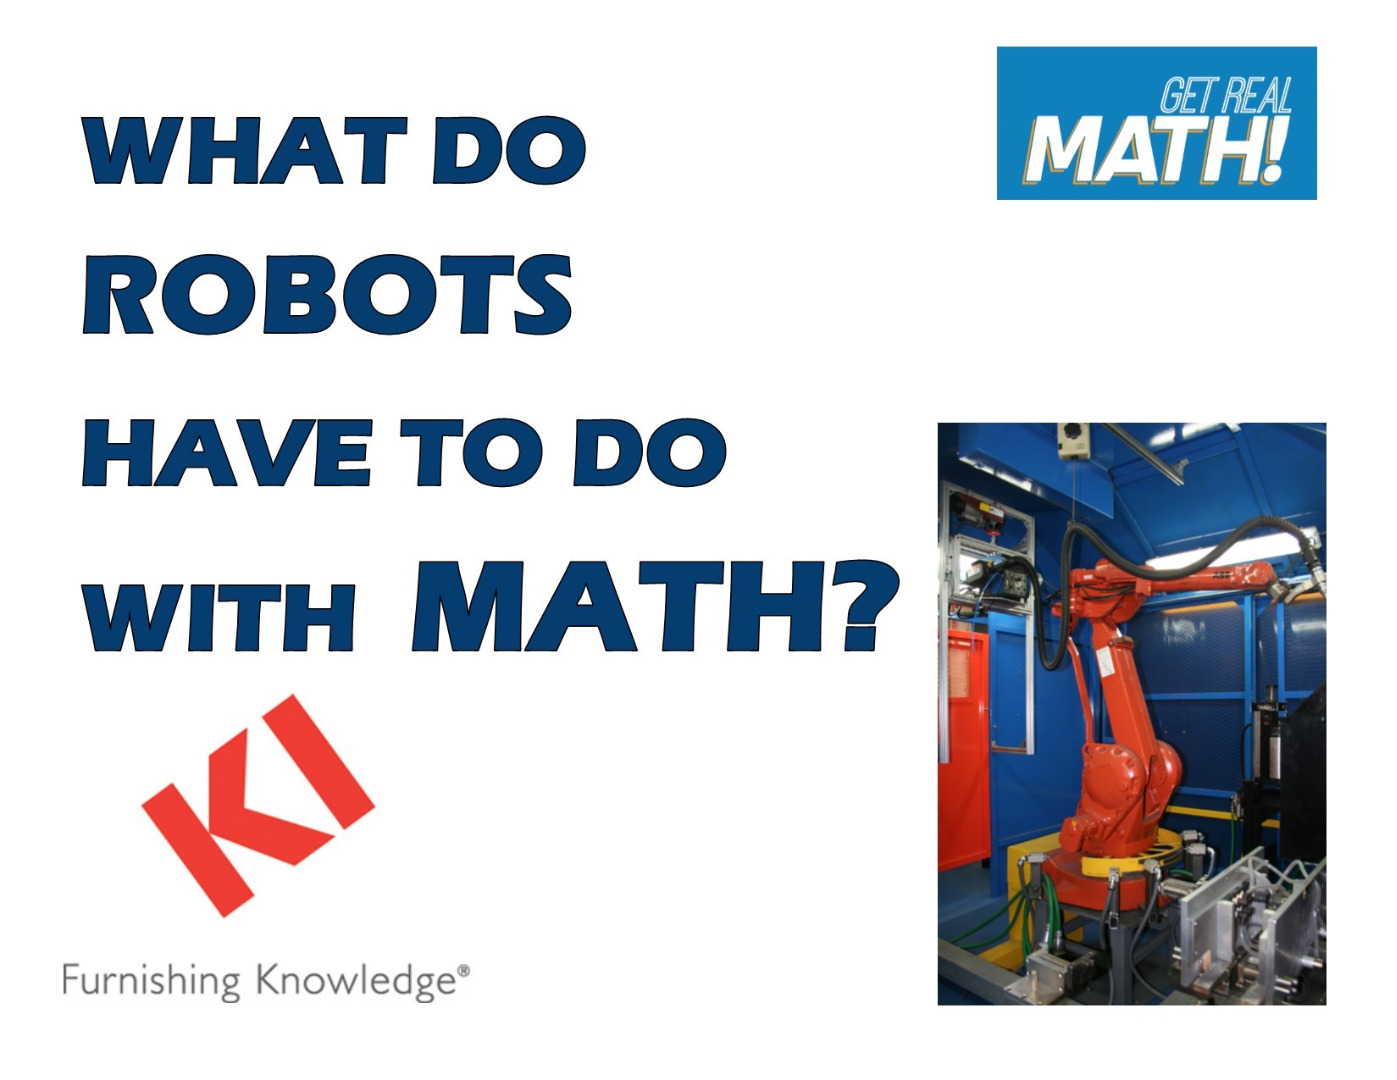 What do robots have to do with math? (KI)